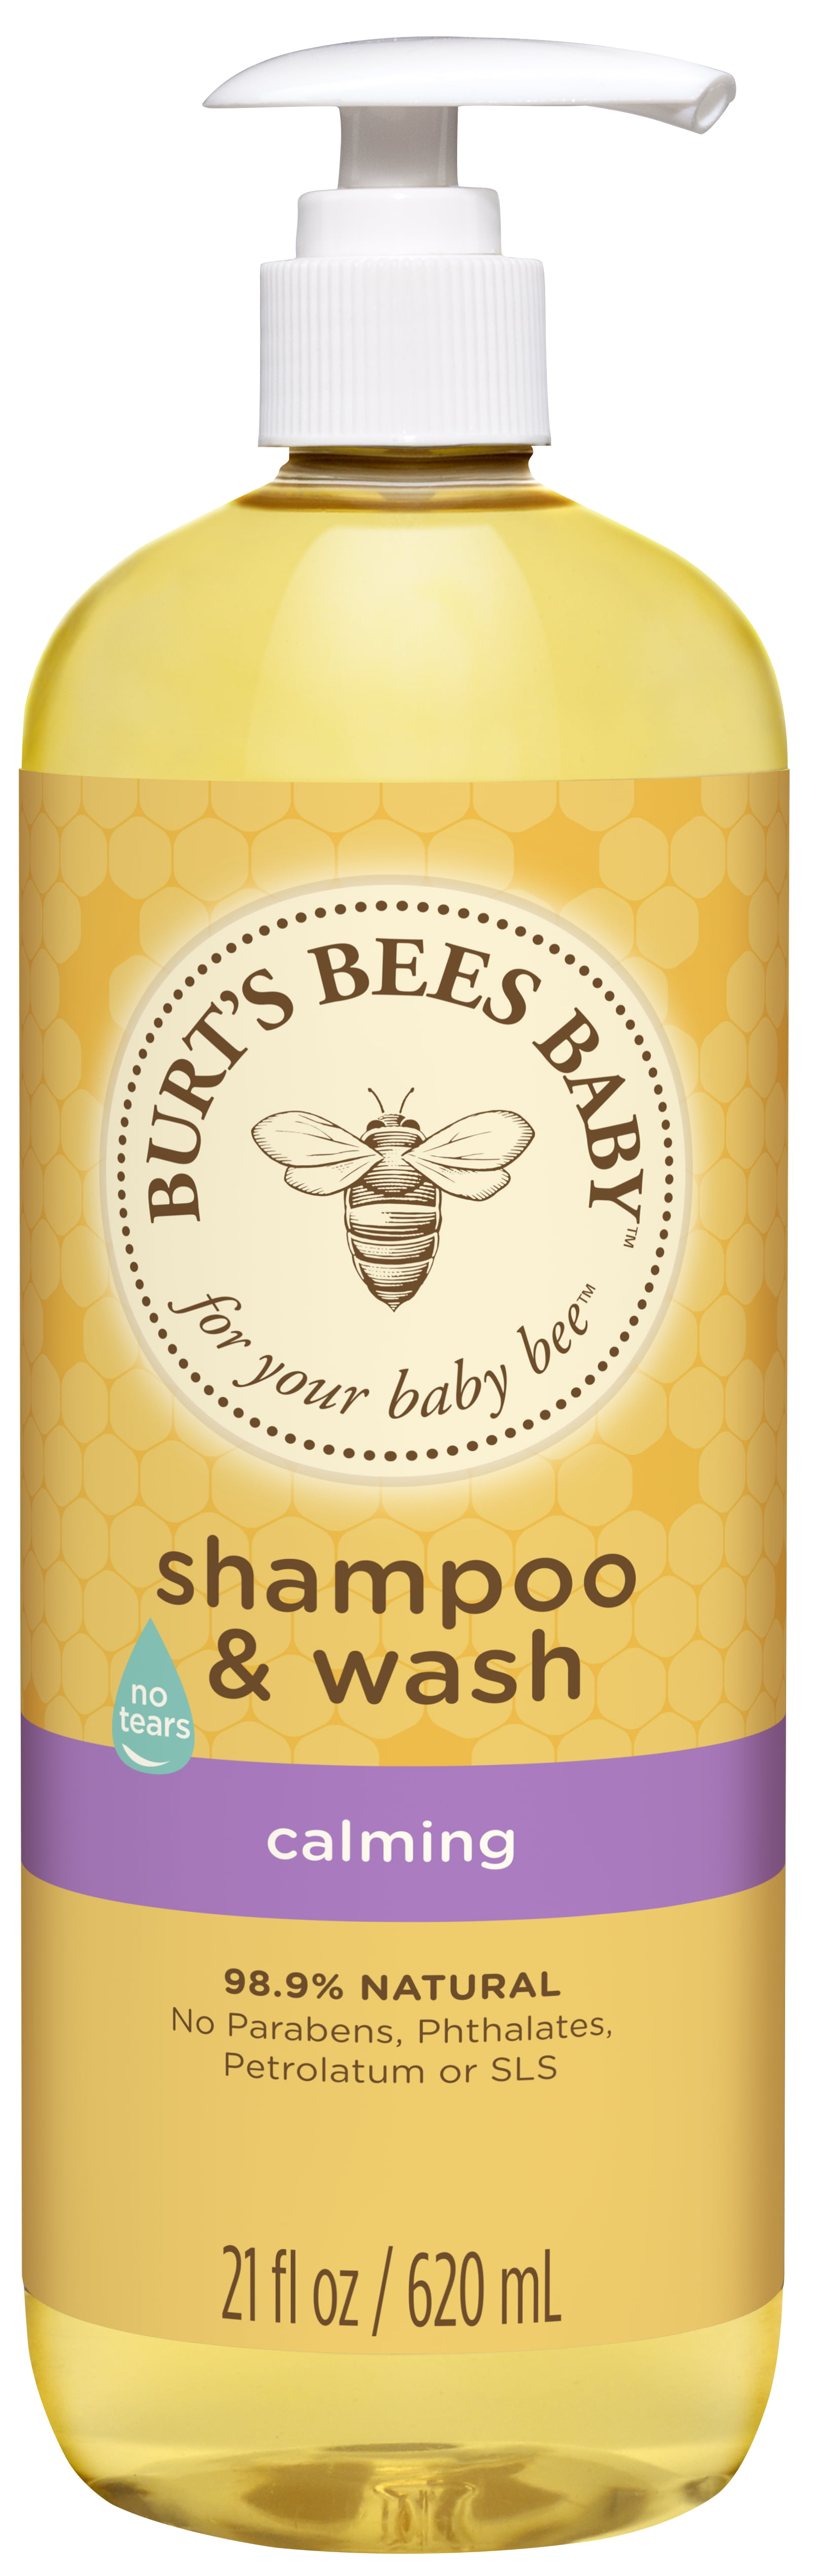 Burt's Bees Baby Shampoo & Wash, Calming Tear Free Baby Soap 21 Ounce Bottle by Burt%27s Bees